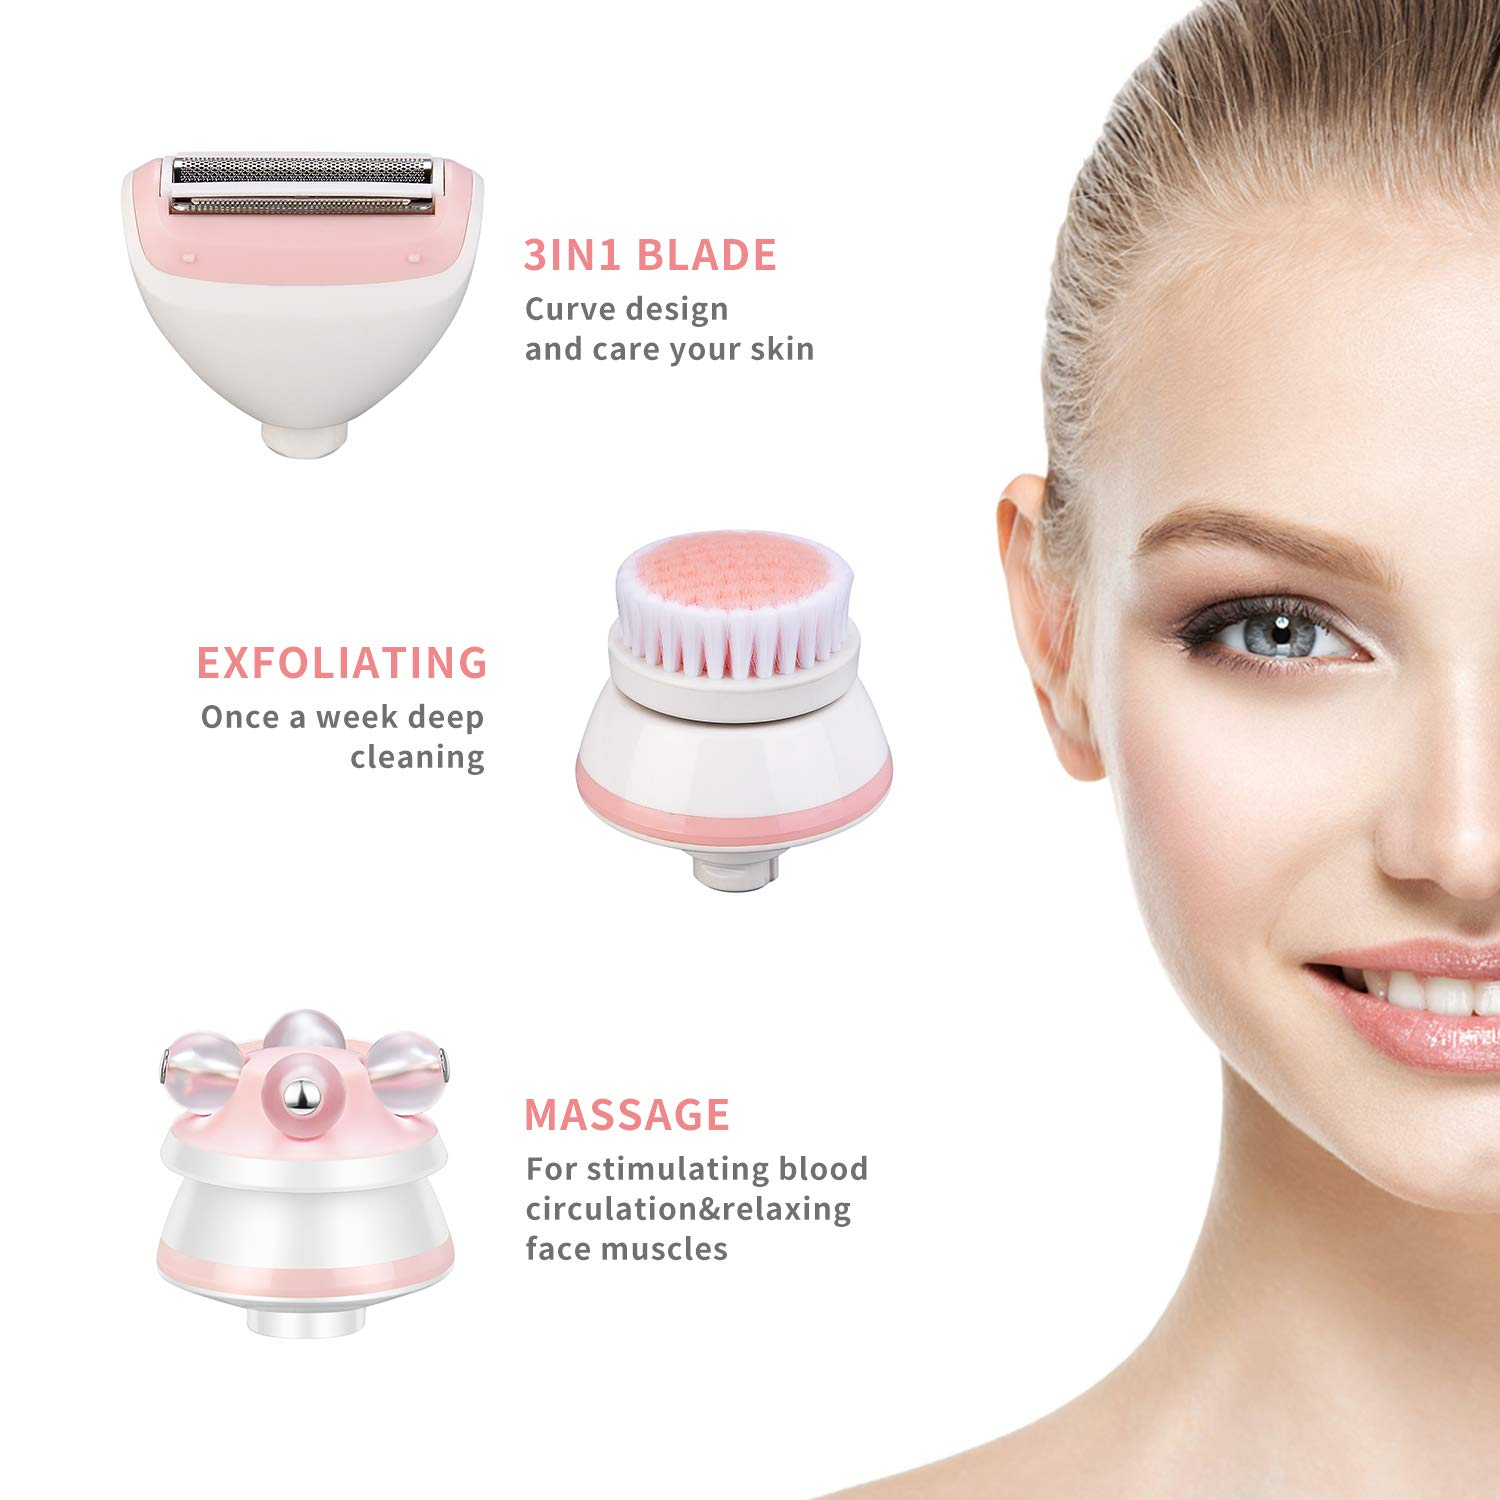 Multi-Function Ladies Electric Shaver 3 in 1 Cordless Electric Razor with Facial Cleansing Spin Brush and 3D Roller Massager Rchargeable Waterproof Bikini Trimmer for Ladies Wet and Dry Use